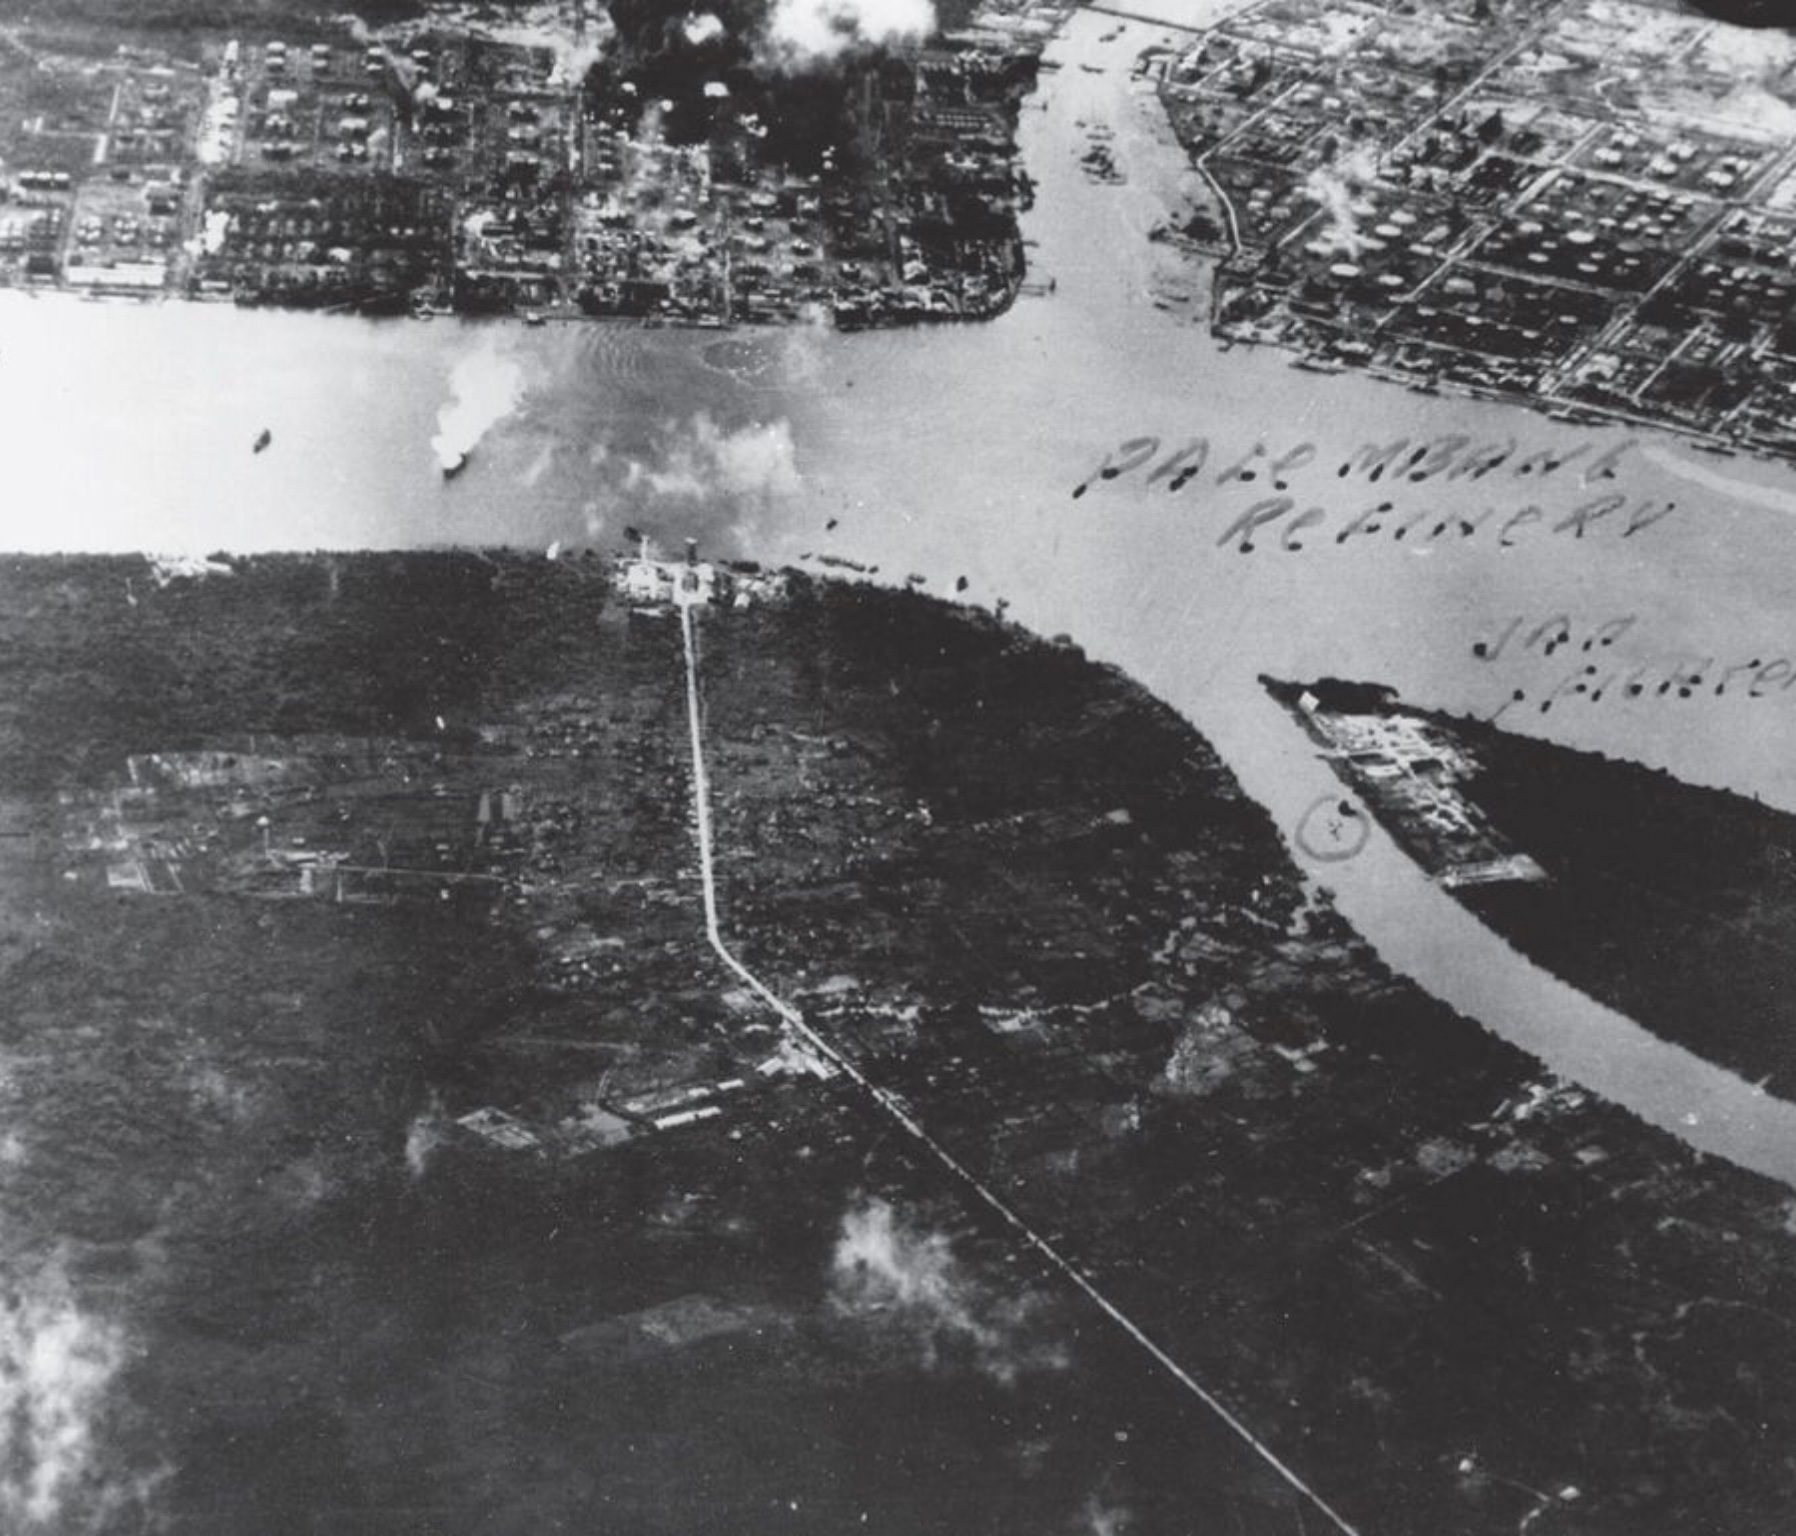 This photograph, taken by Air Coordinator Major Hay during the Meridian II attack on Songei Gerong, has been marked by analysts to highlight the presence of a Japanese fighter. The refinery can be seen burning in the top-left of the image, and the tanker on the left.